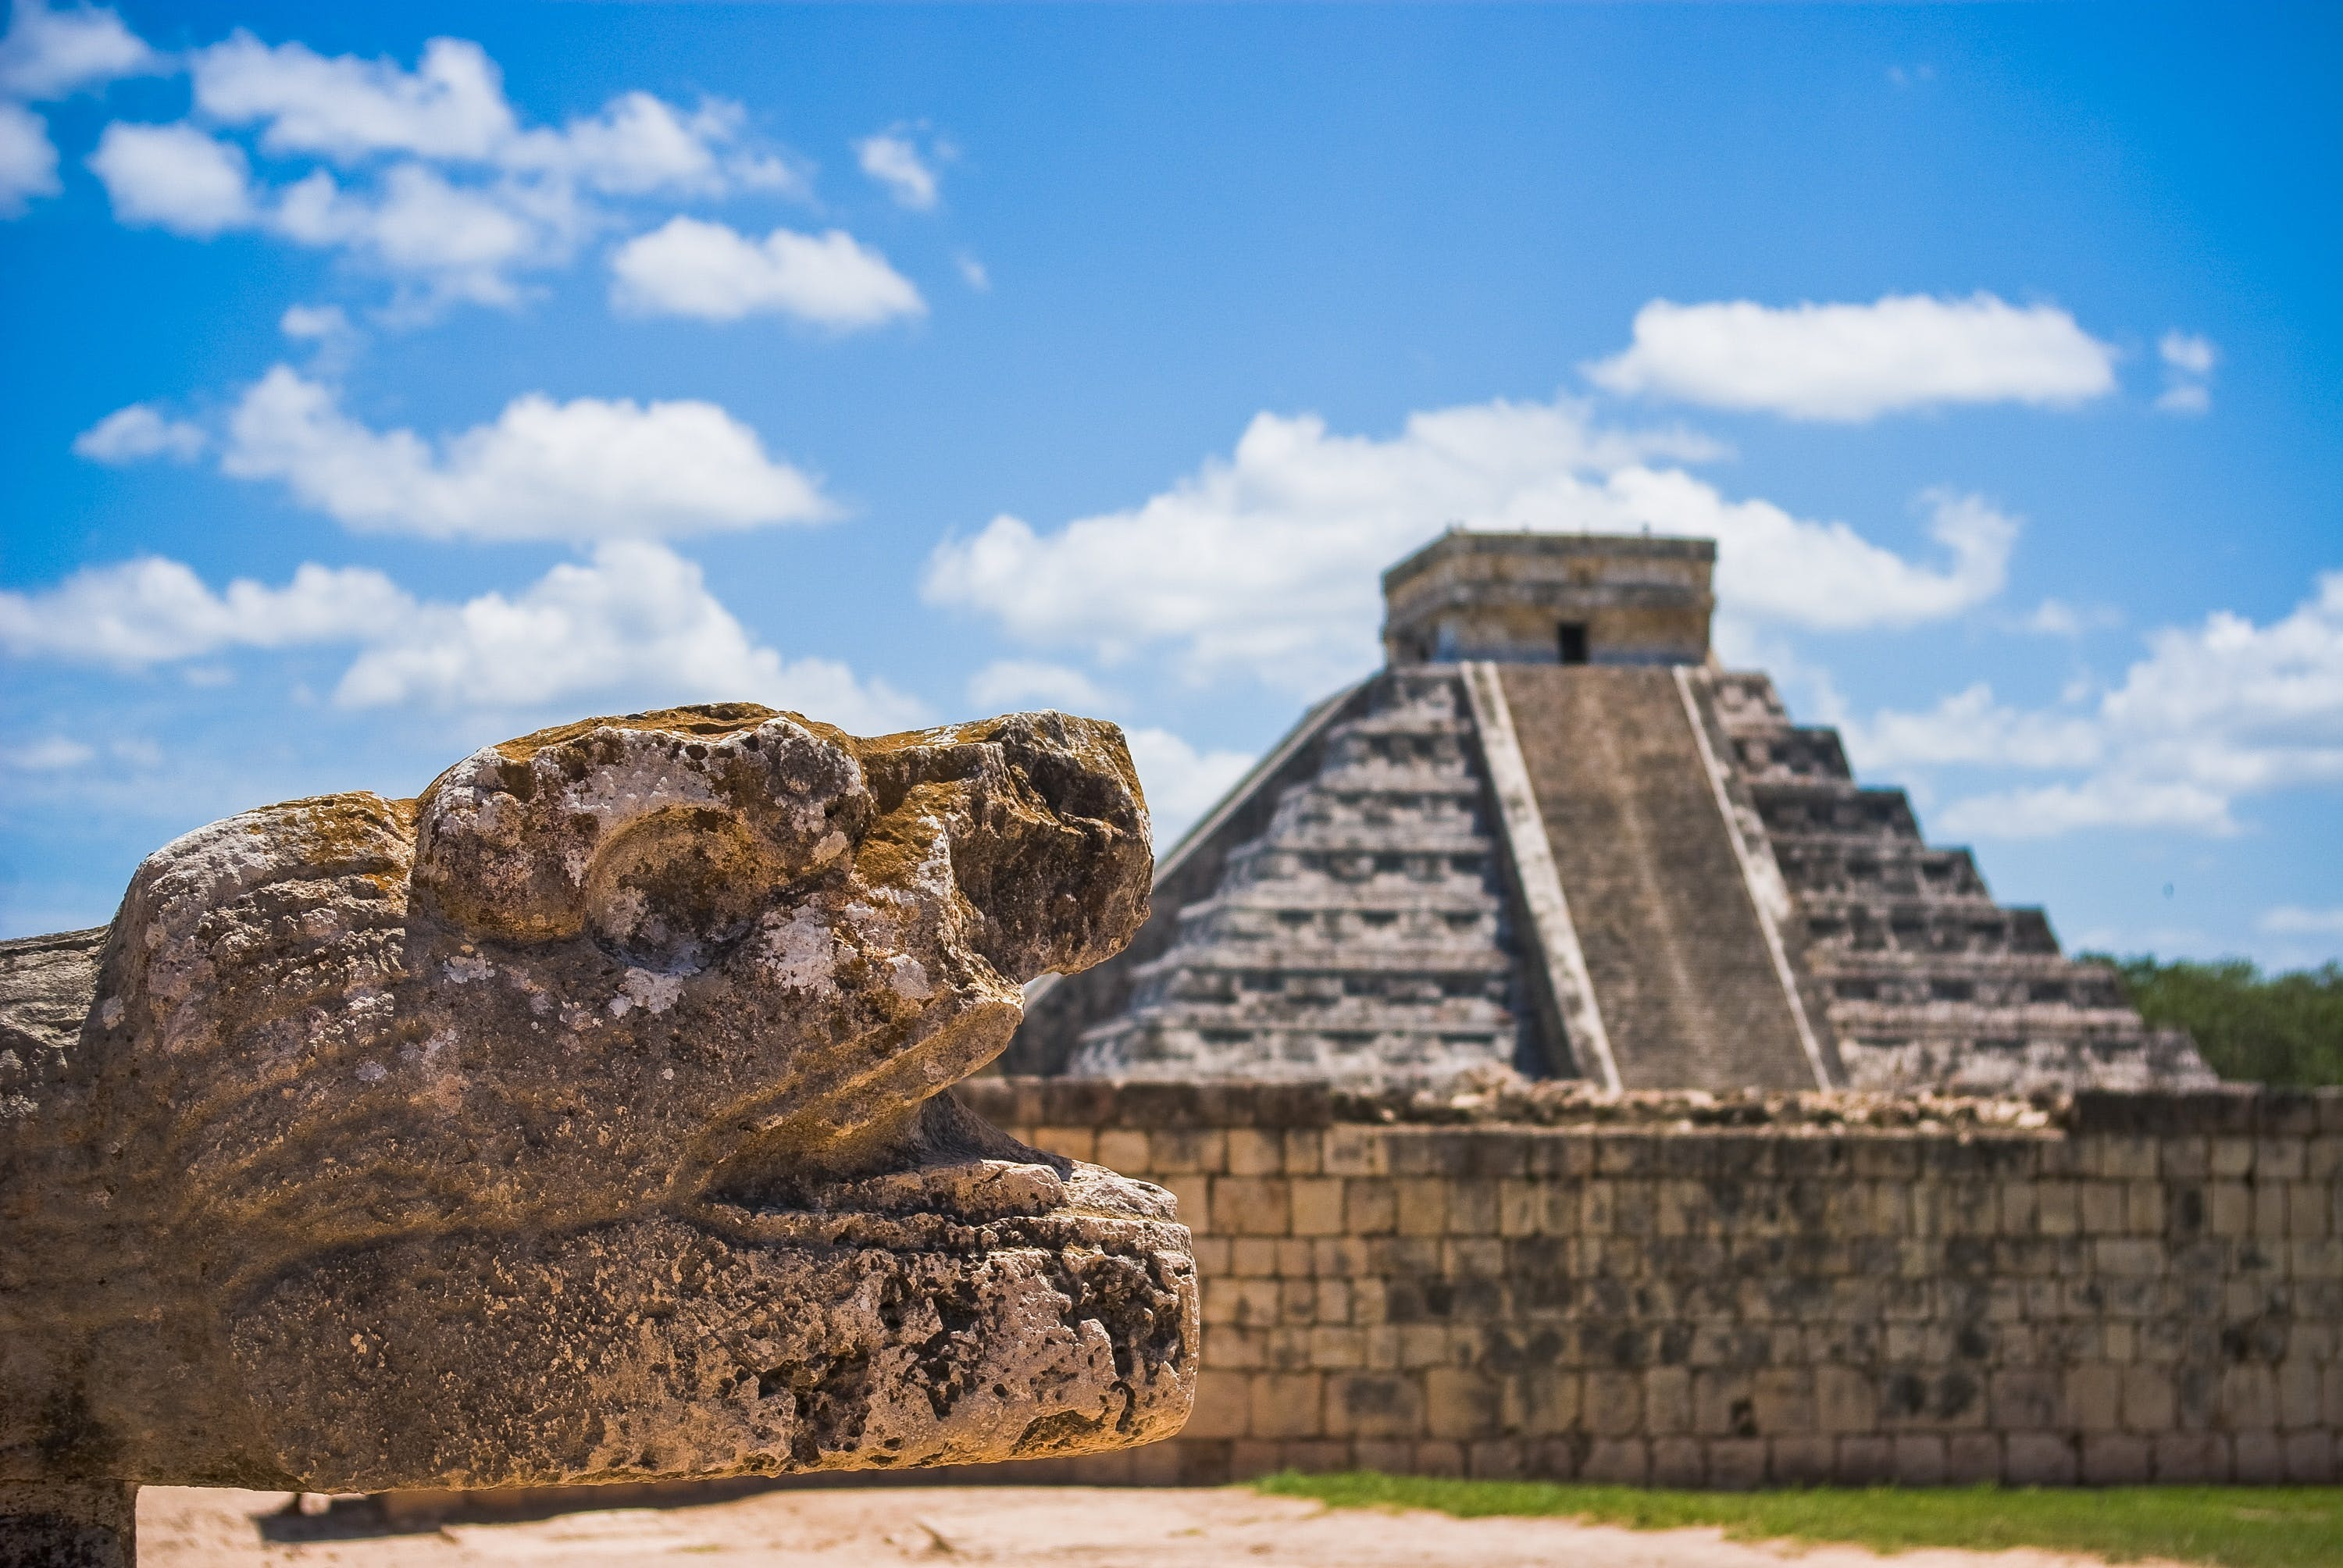 A photo of a stepped Mayan pyramid with a weathered stone sculpture of a serpent's head in the foreground.